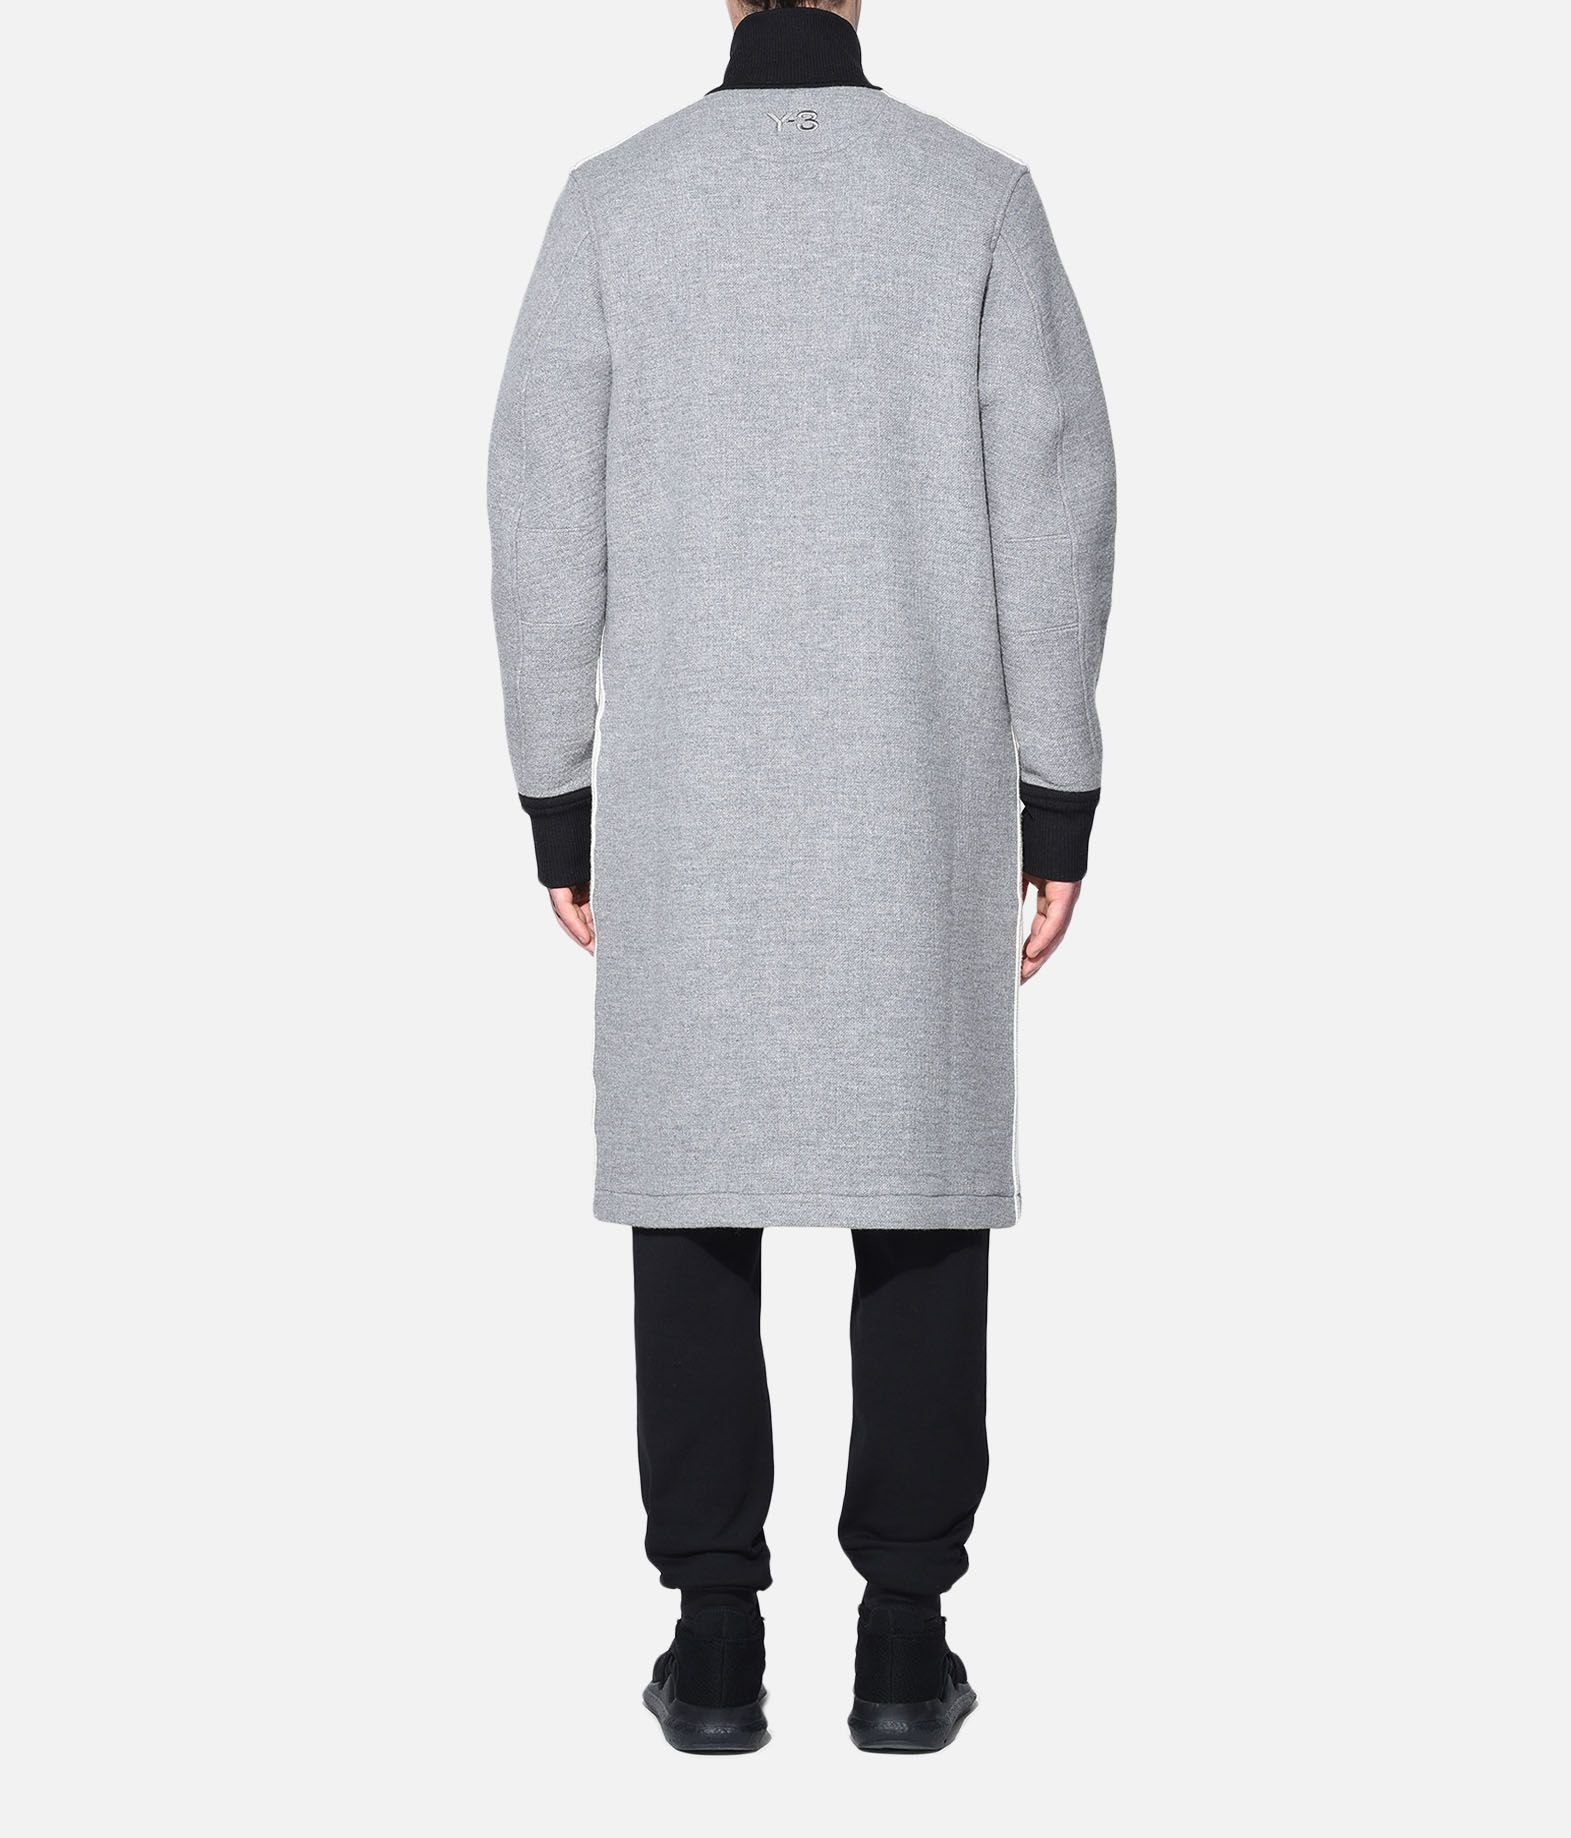 Y-3 Y-3 Spacer Wool Coat Coat Man d